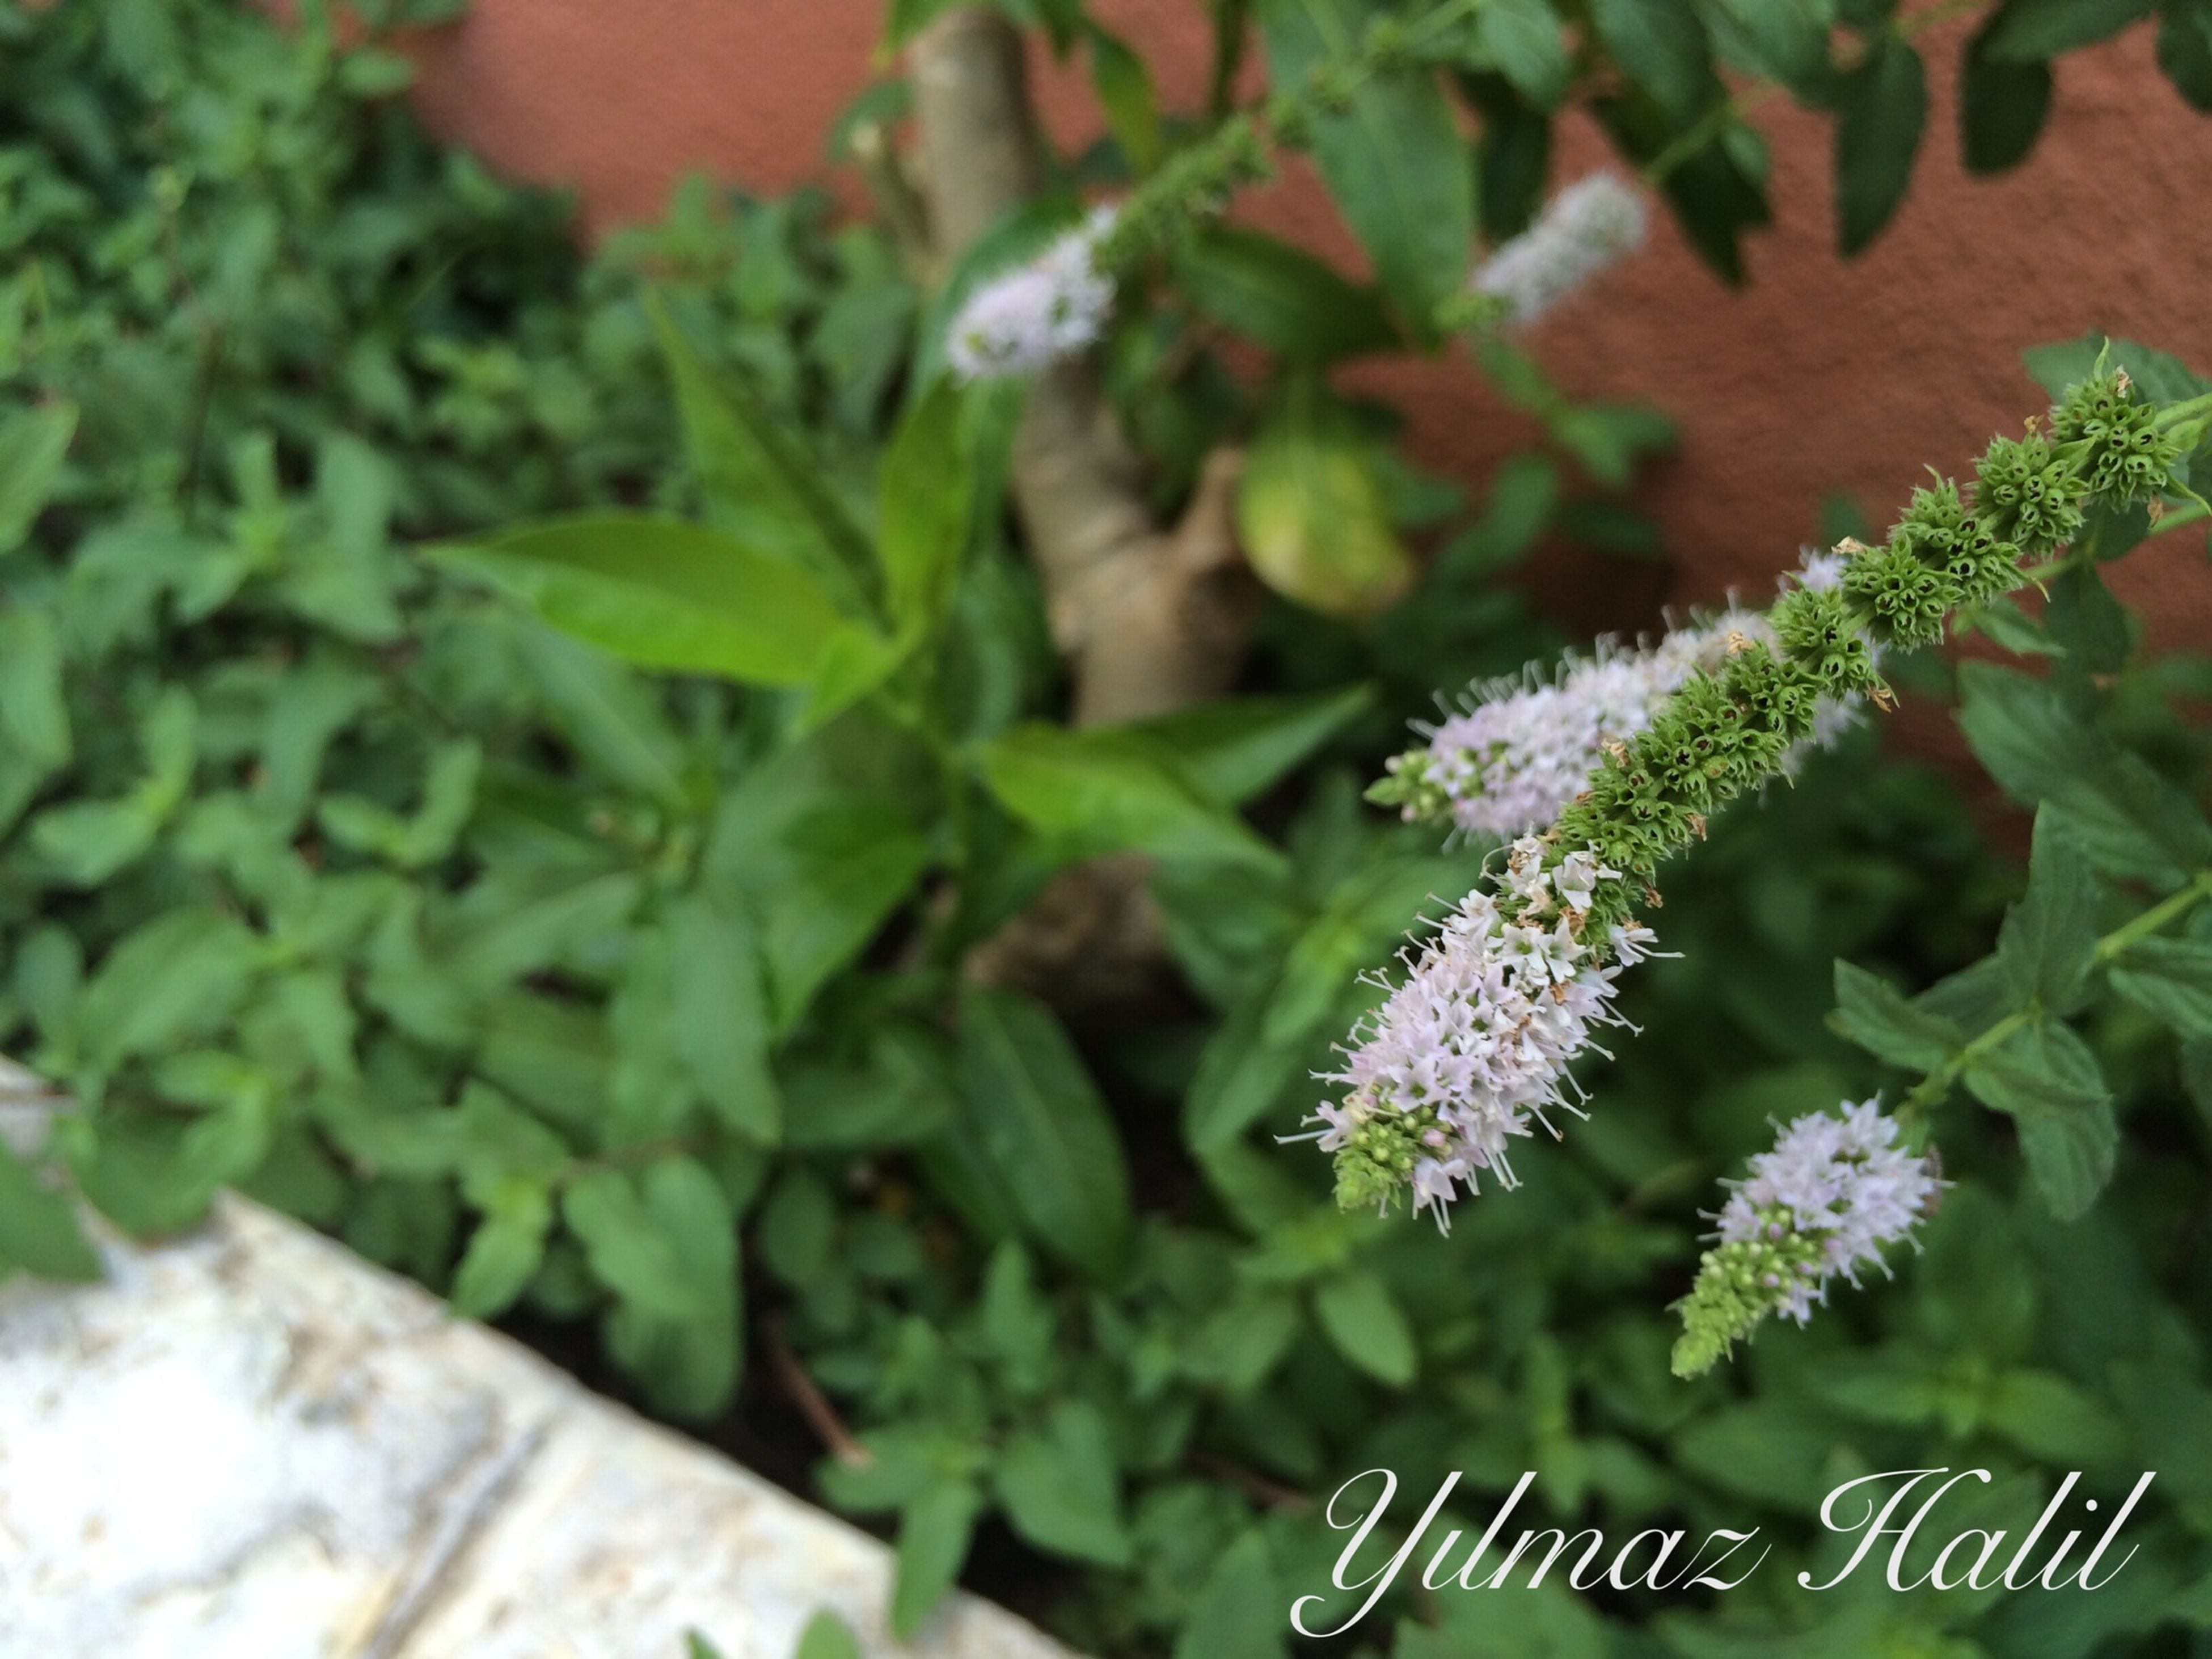 leaf, green color, plant, growth, close-up, freshness, high angle view, flower, nature, fragility, focus on foreground, beauty in nature, purple, potted plant, no people, day, green, outdoors, selective focus, white color